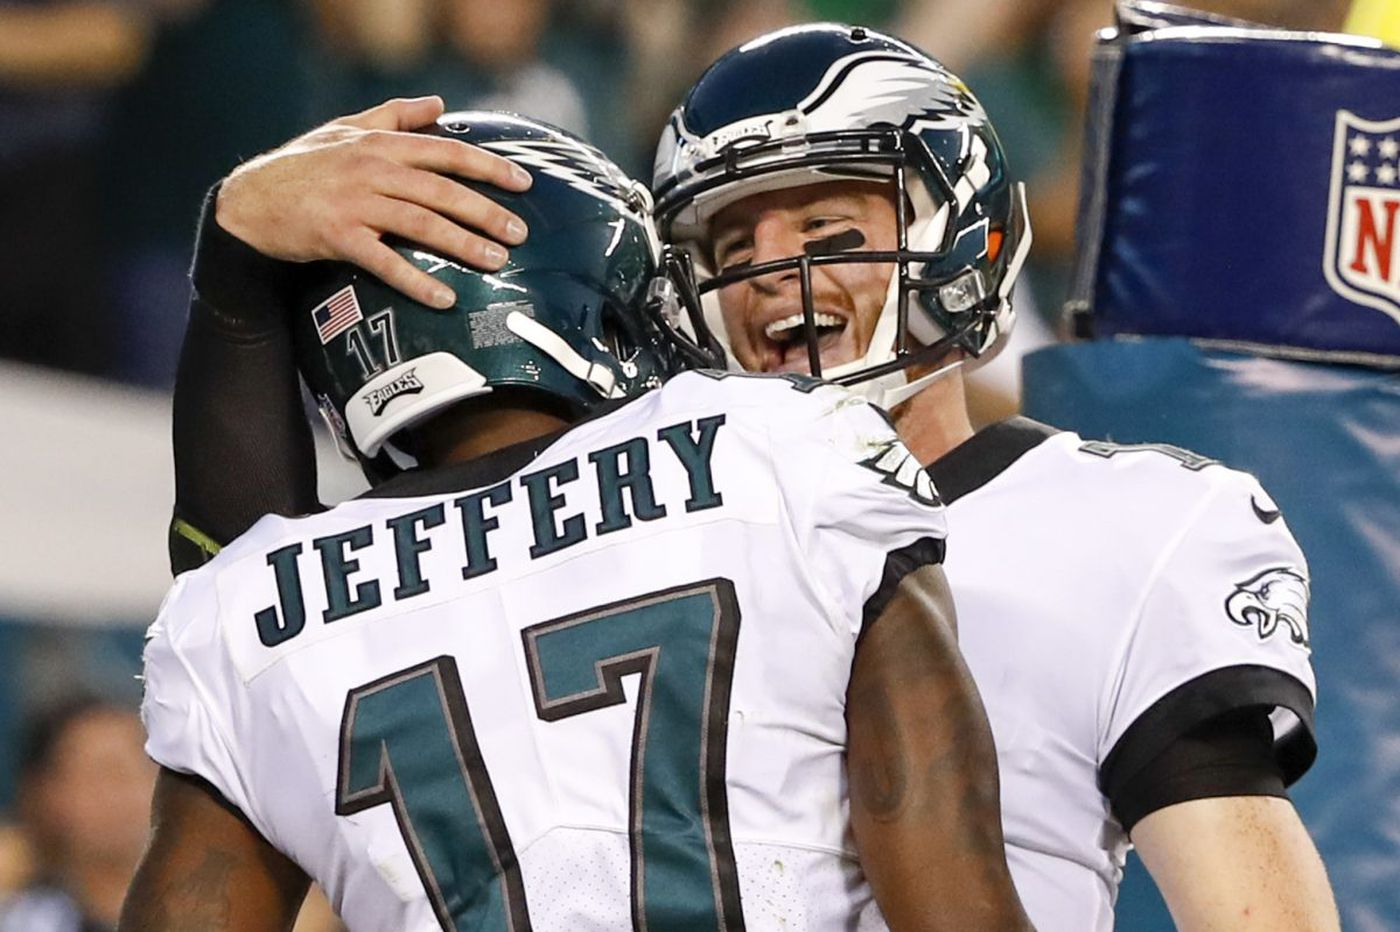 040c524d496 Eagles finally have a No. 1 WR in Alshon Jeffery | Early Birds newsletter